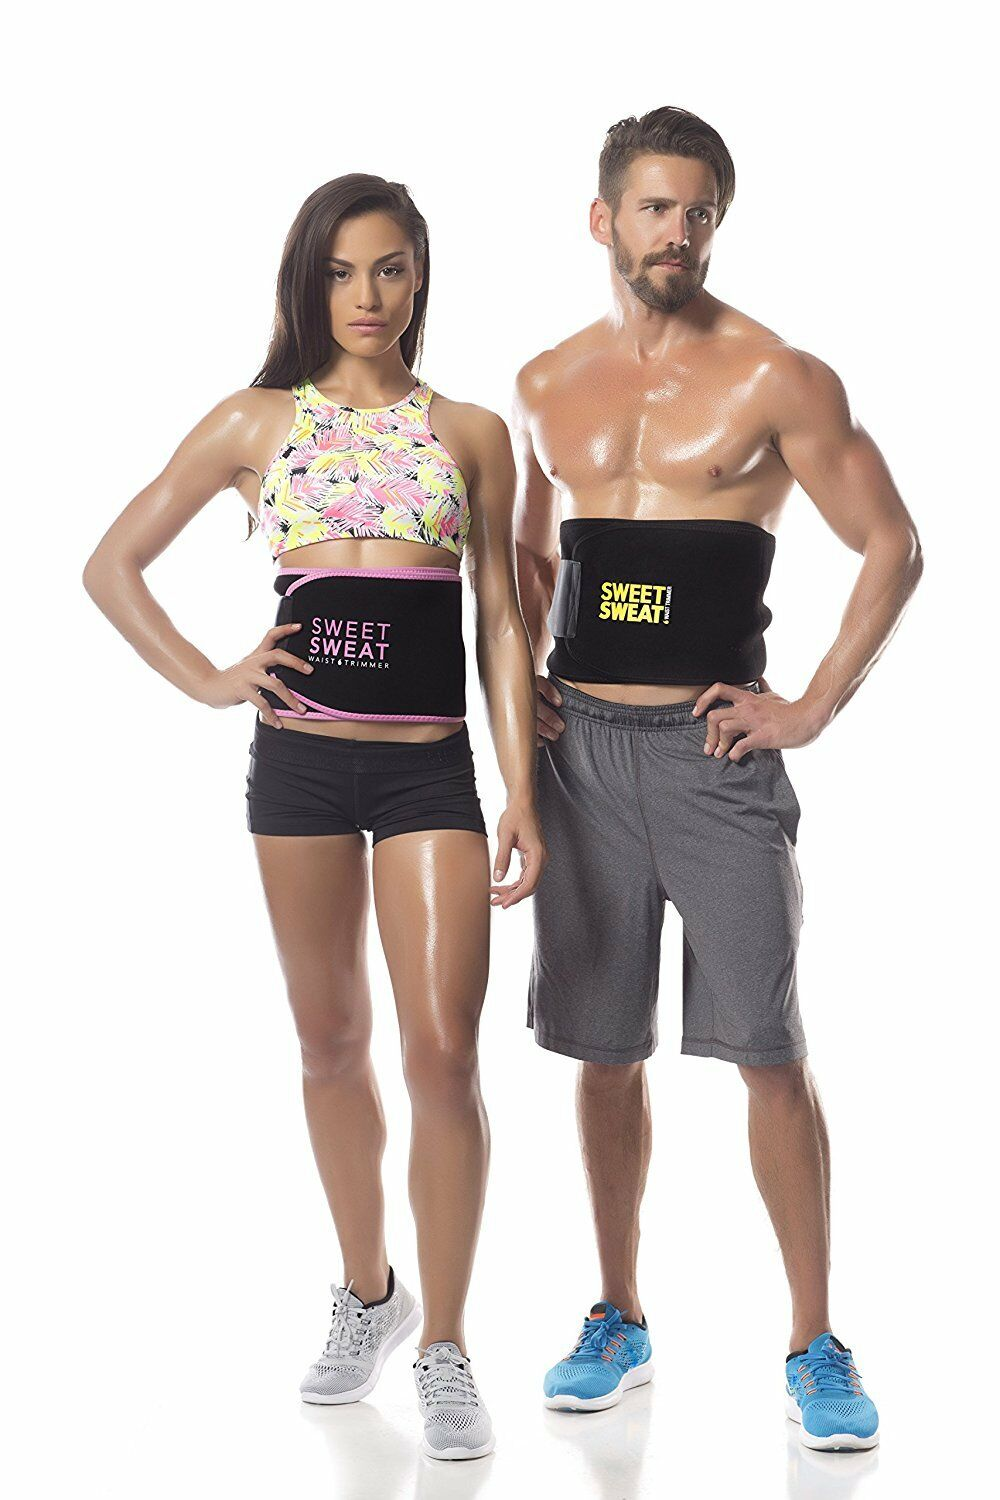 Sweet SWEAT Taille Trimmer grande taille comprend échantillon de de échantillon Sweet Sweat Home Sport fc0c74